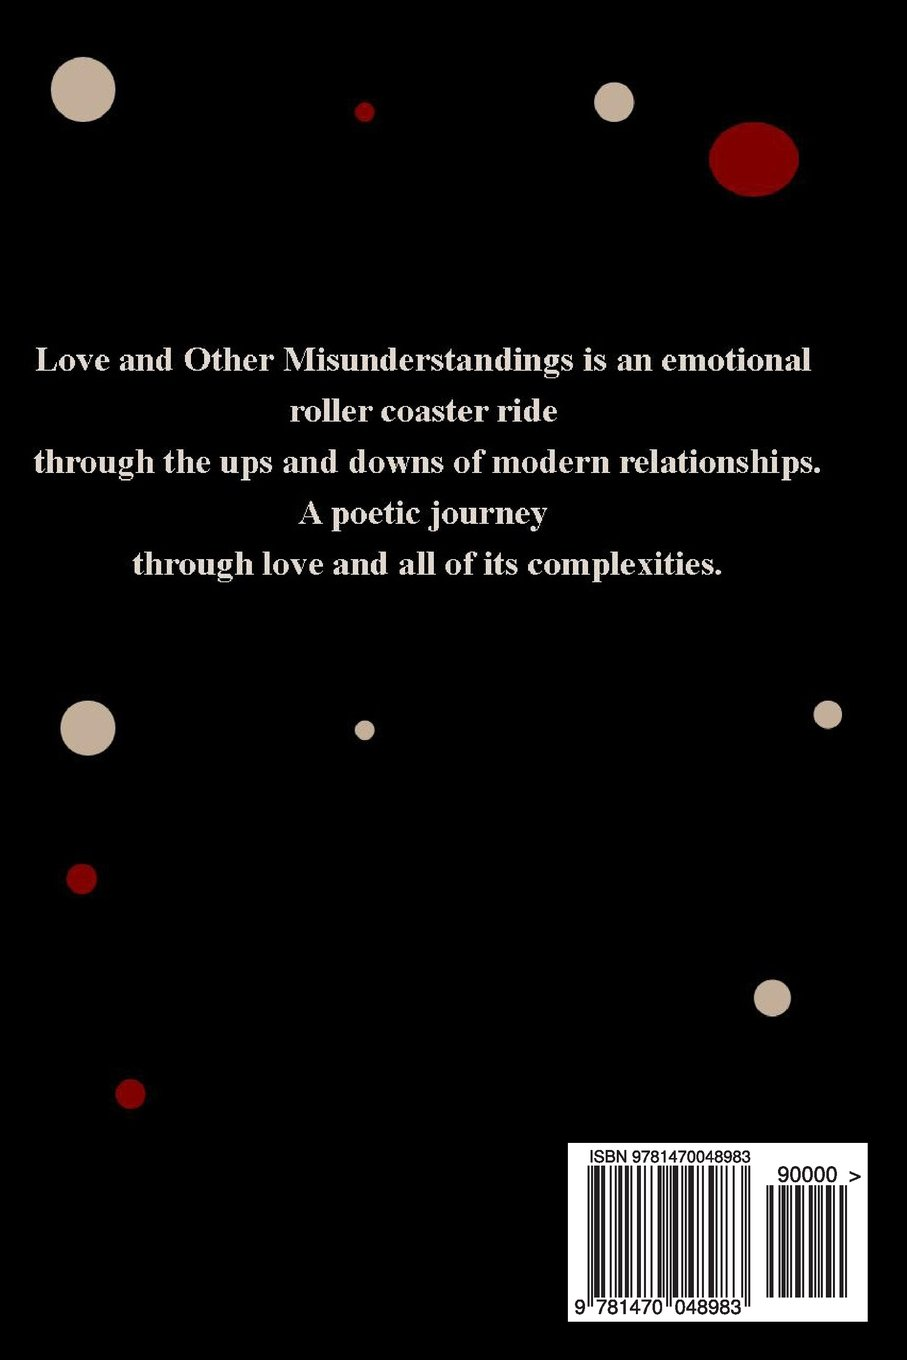 Love and Other Misunderstandings